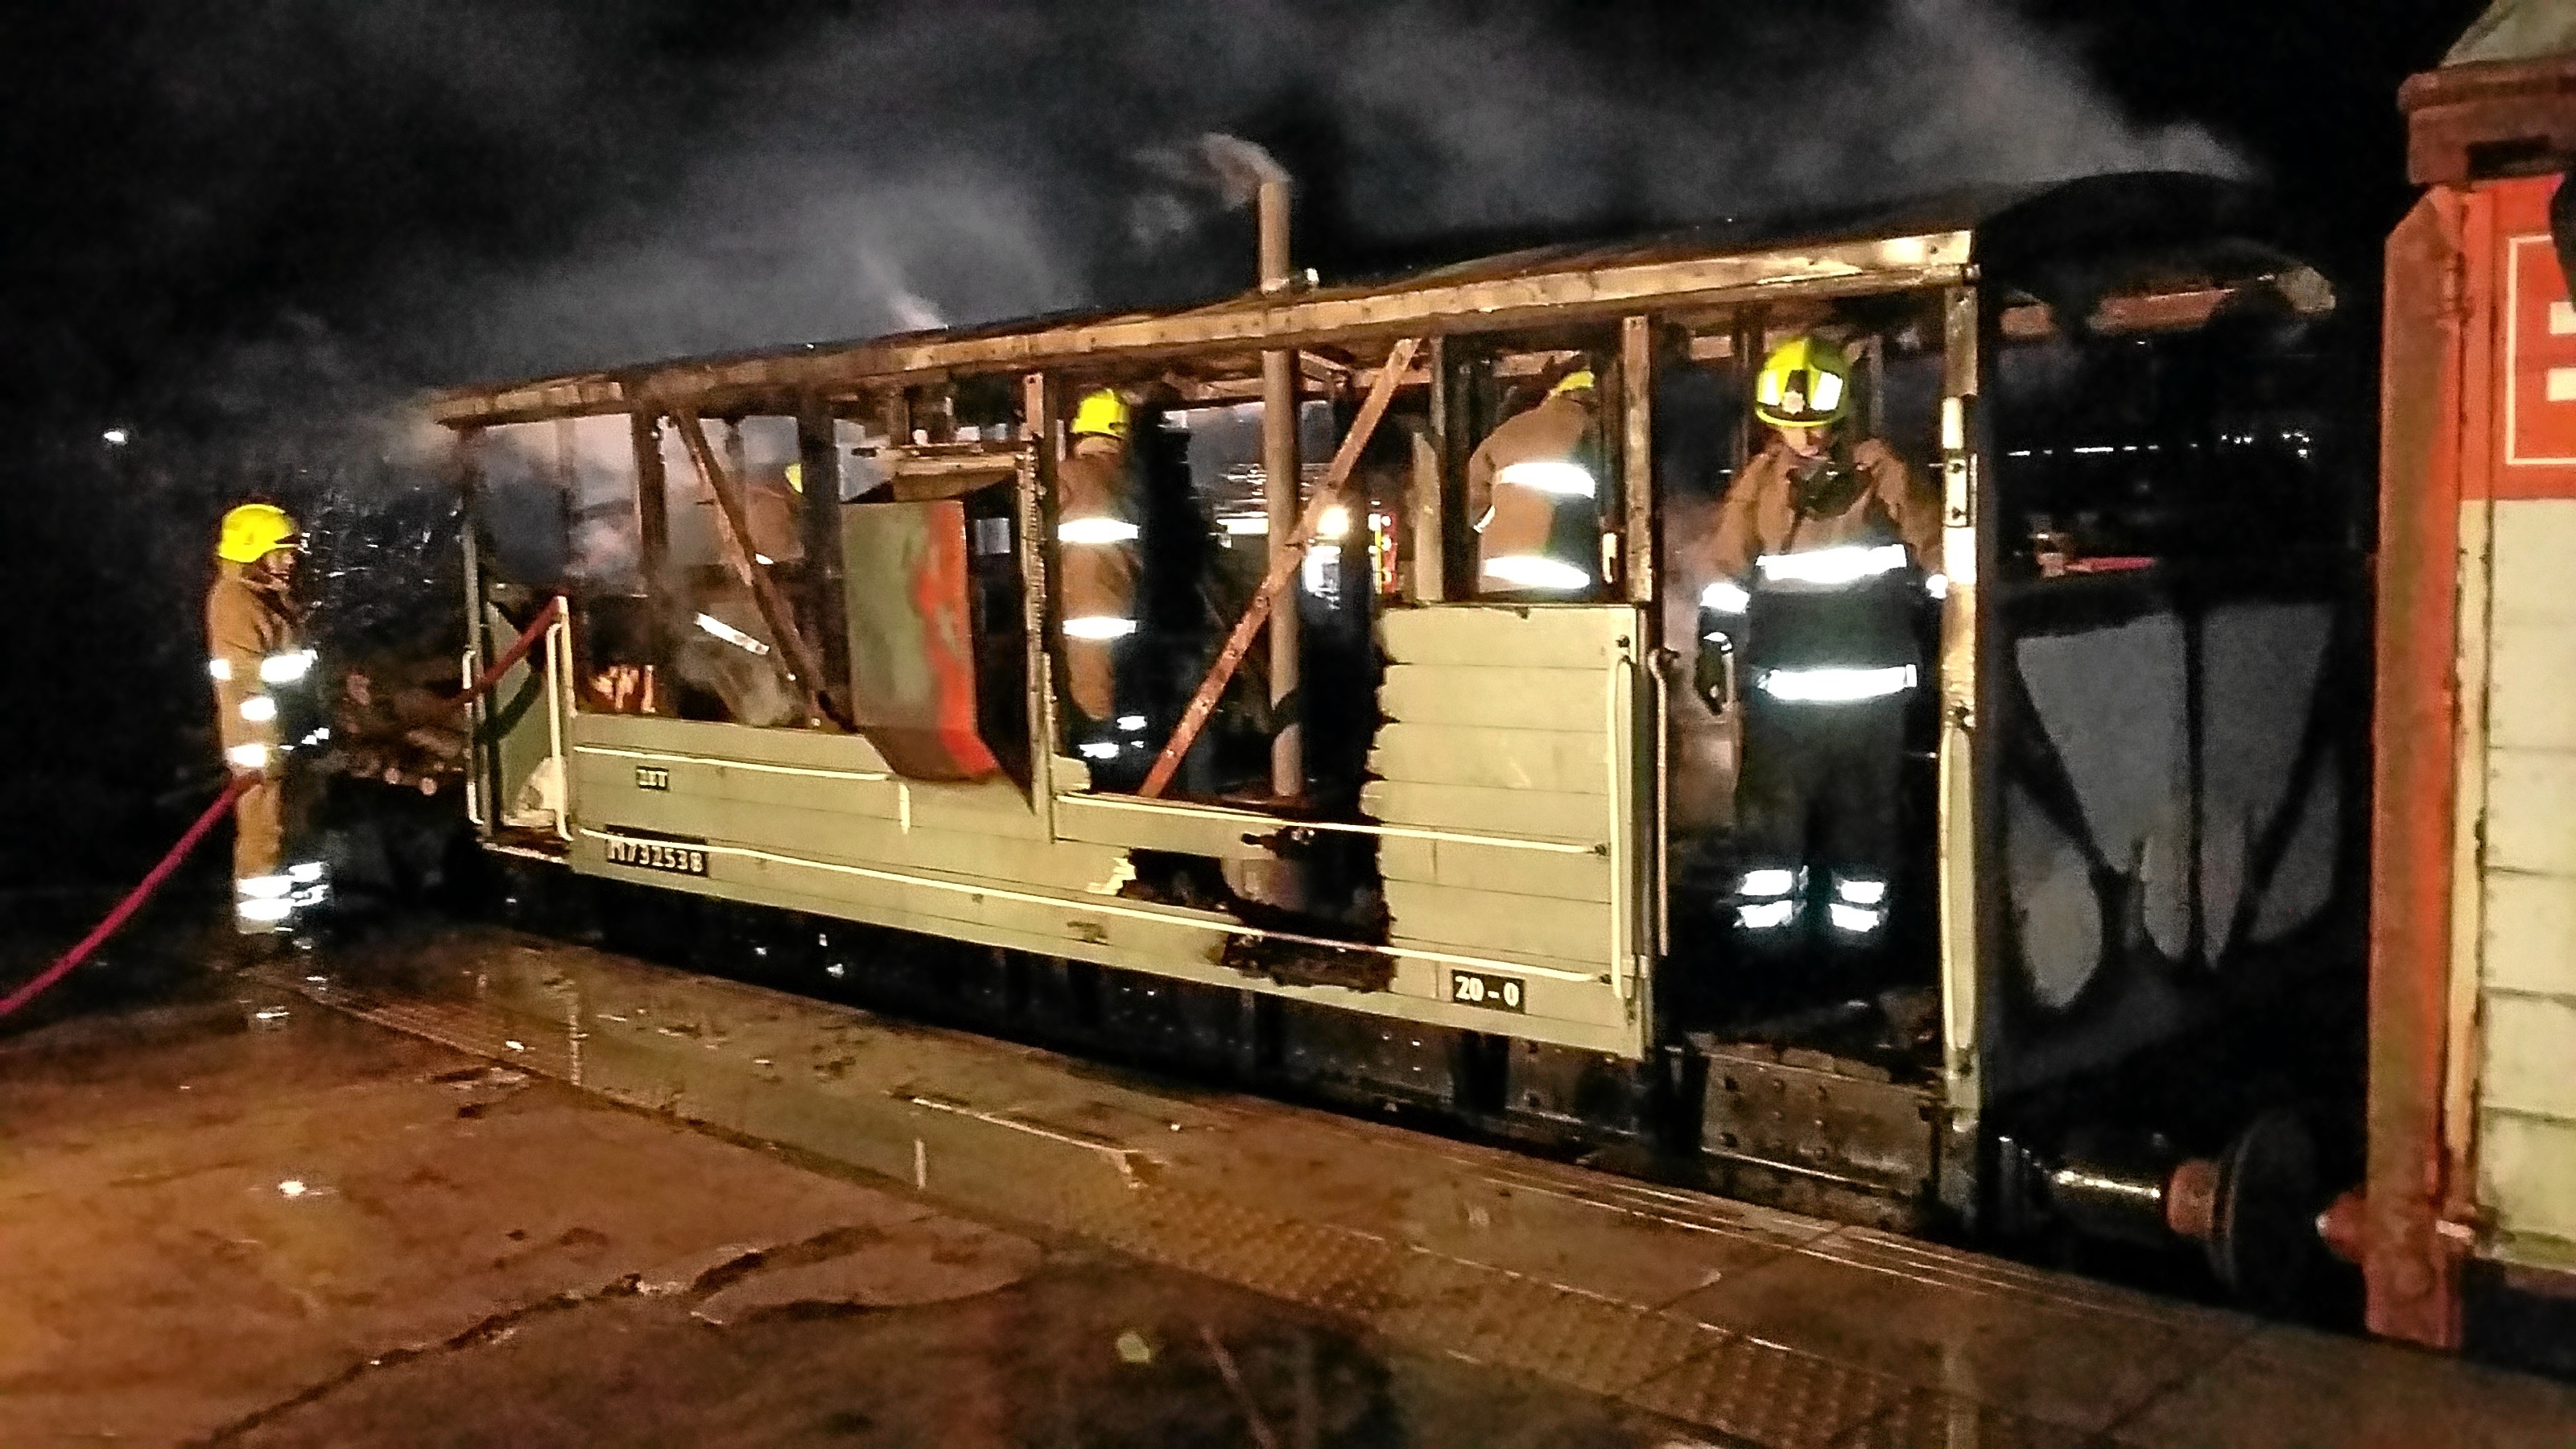 Firefighters tackling a blaze on a Caledonian Railway brakevan. An investigation into the fire is ongoing, with the culprit still not found.